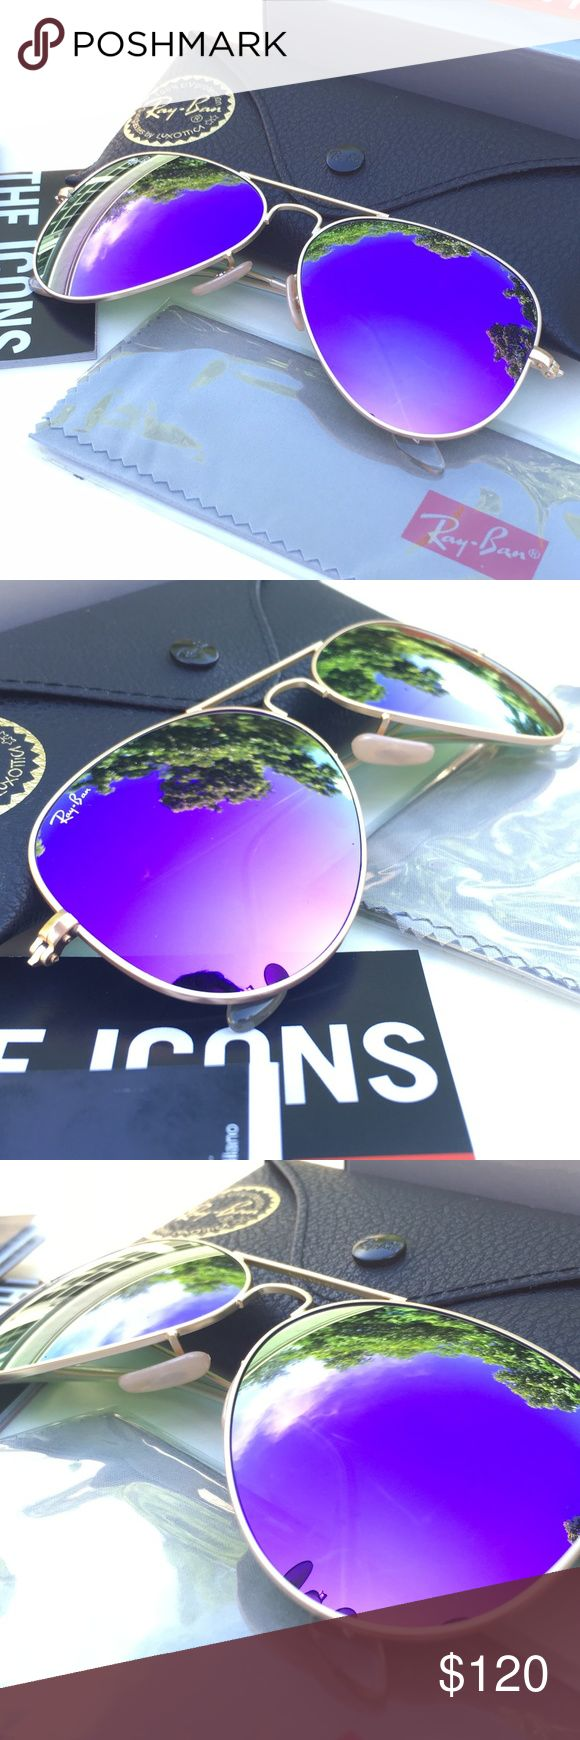 RAY-BAN AVIATOR Sunglasses - Violet Flash/Gold 100% AUTHENTIC & BRAND NEW  Original RAY-BAN AVIATOR Sunglasses Violet Flash - Gold Frame Model: RB3025 112/68F (62mm)   -----------------------------------------------------------------   Product Description: Brand: Ray-Ban (100% Authentic) Lens Color: Violet Flash Frame Color: Gold Model: RB3025 Color Code: 112/68F Size:  62mm/14/3N Gender: Unisex Made: Italy  Package Includes:  - Ray-Ban Outer Paper Box - Ray-Ban Carrying Case - Ray-Ban…